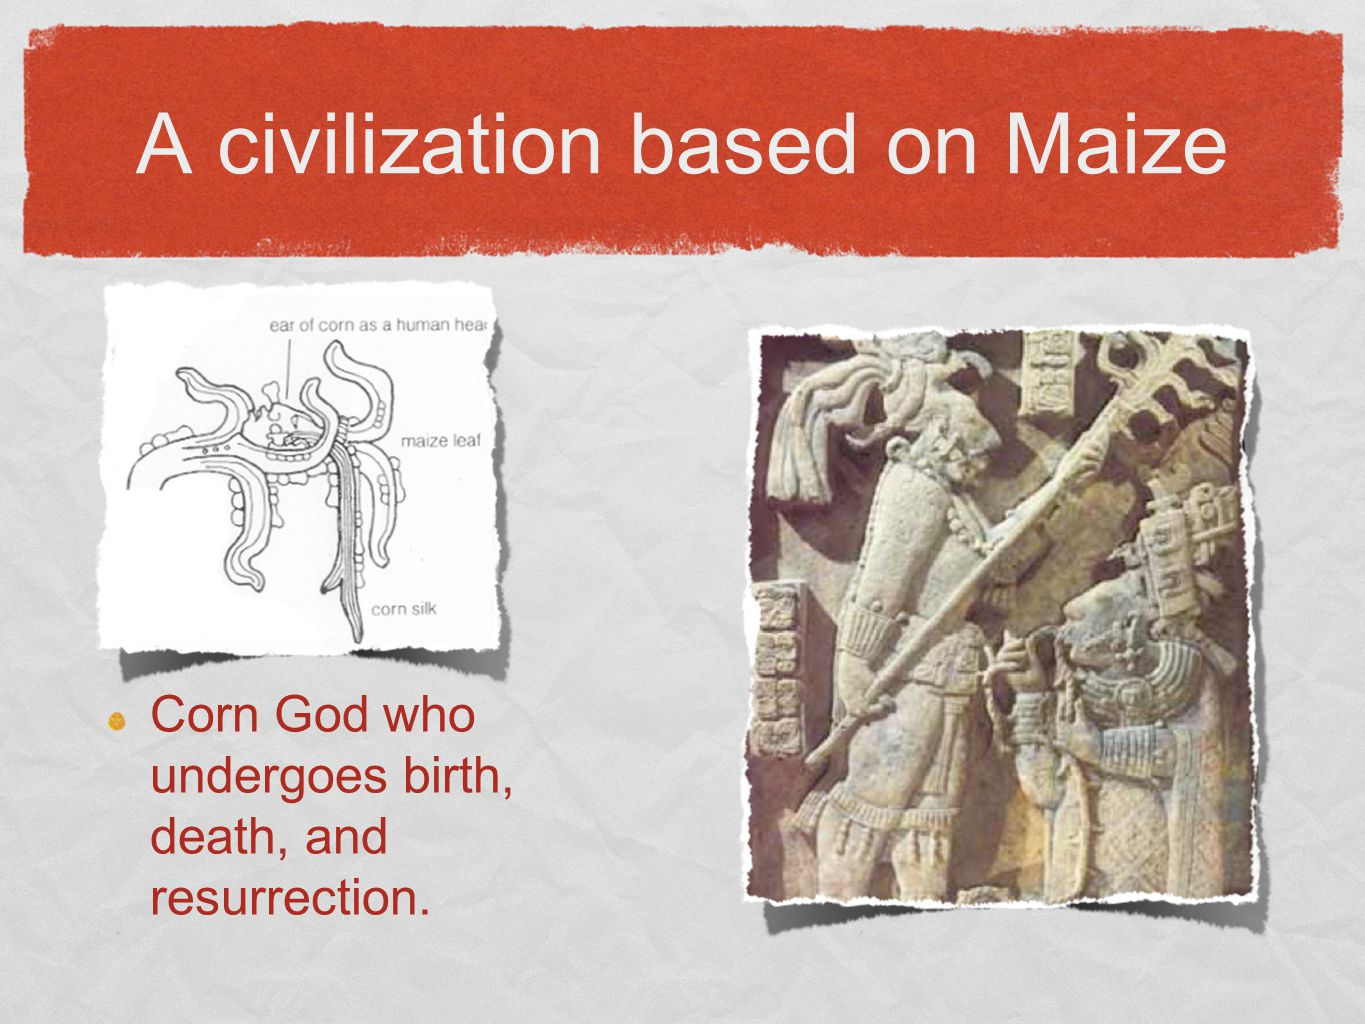 A civilization based on Maize Corn God who undergoes birth, death, and resurrection.